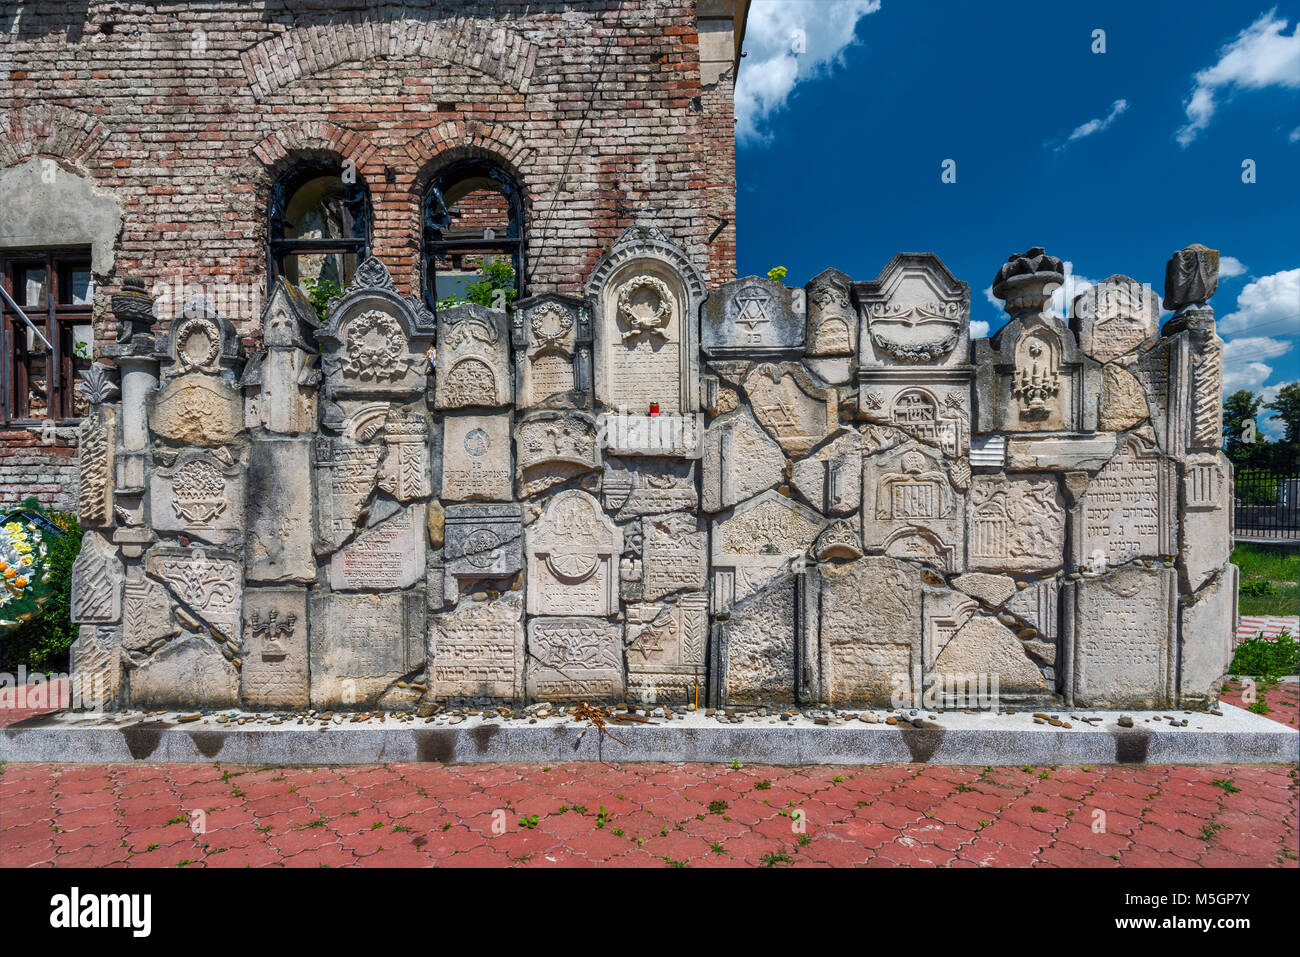 Memorial wall constructed of fragments of headstones, ruined synagogue, Jewish Cemetery in Chernivtsi, Bukovina - Stock Image